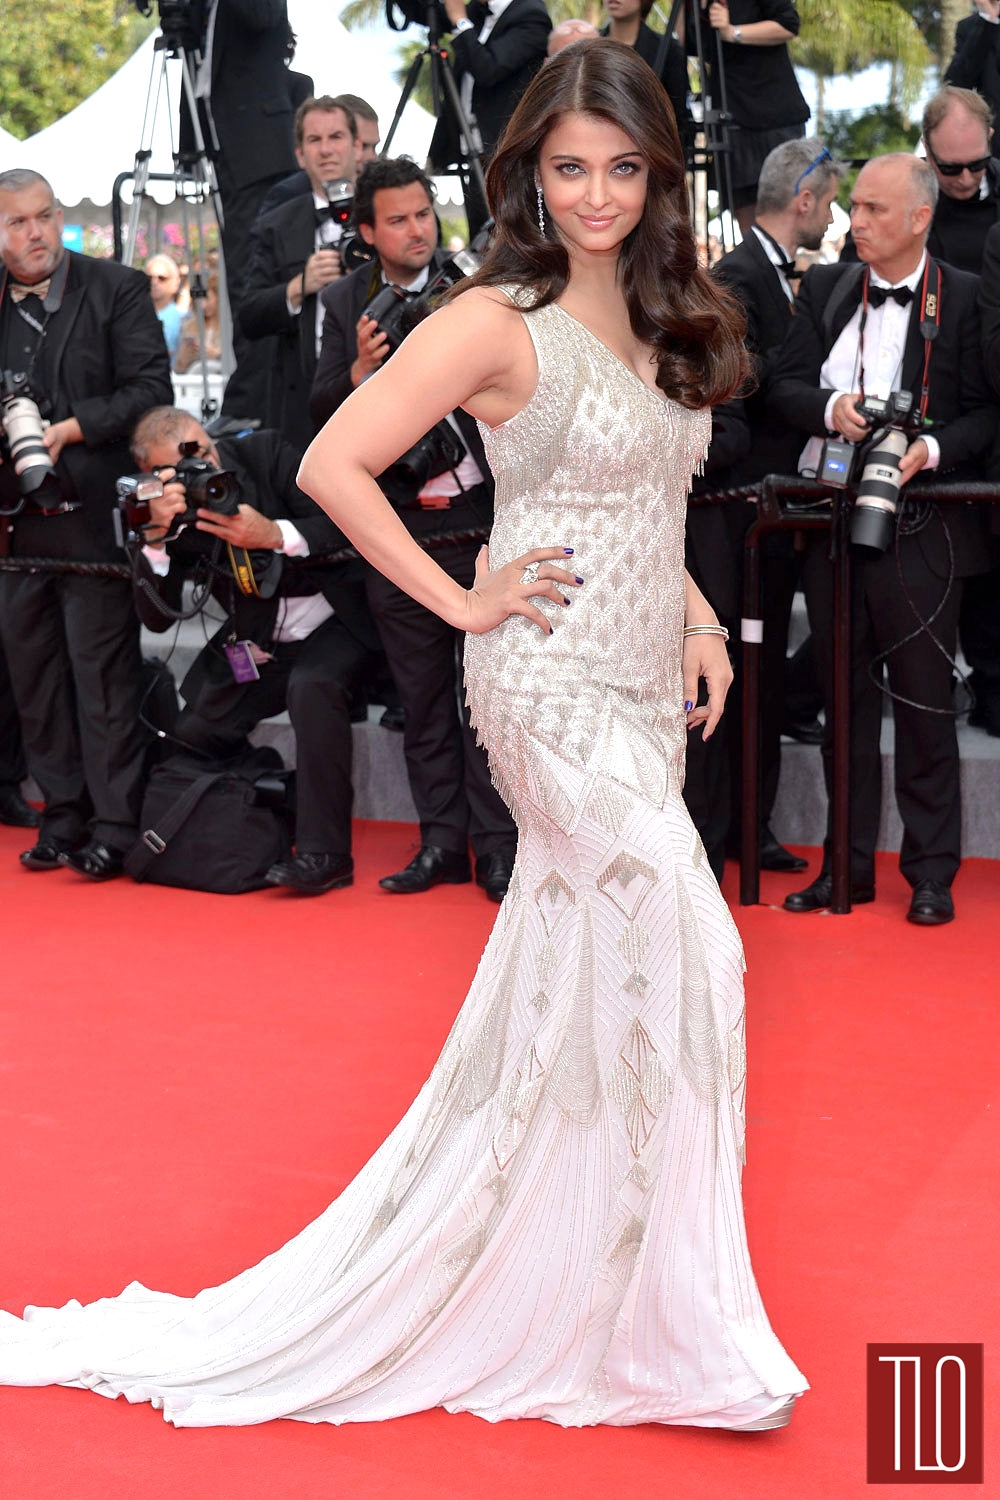 Aishwarya-Rai-Roberto-Cavalli-The-Search-Two-Days-One-Night-Premiere-Cannes-2014-Tom-Lorenzo-Site-TLO (1)